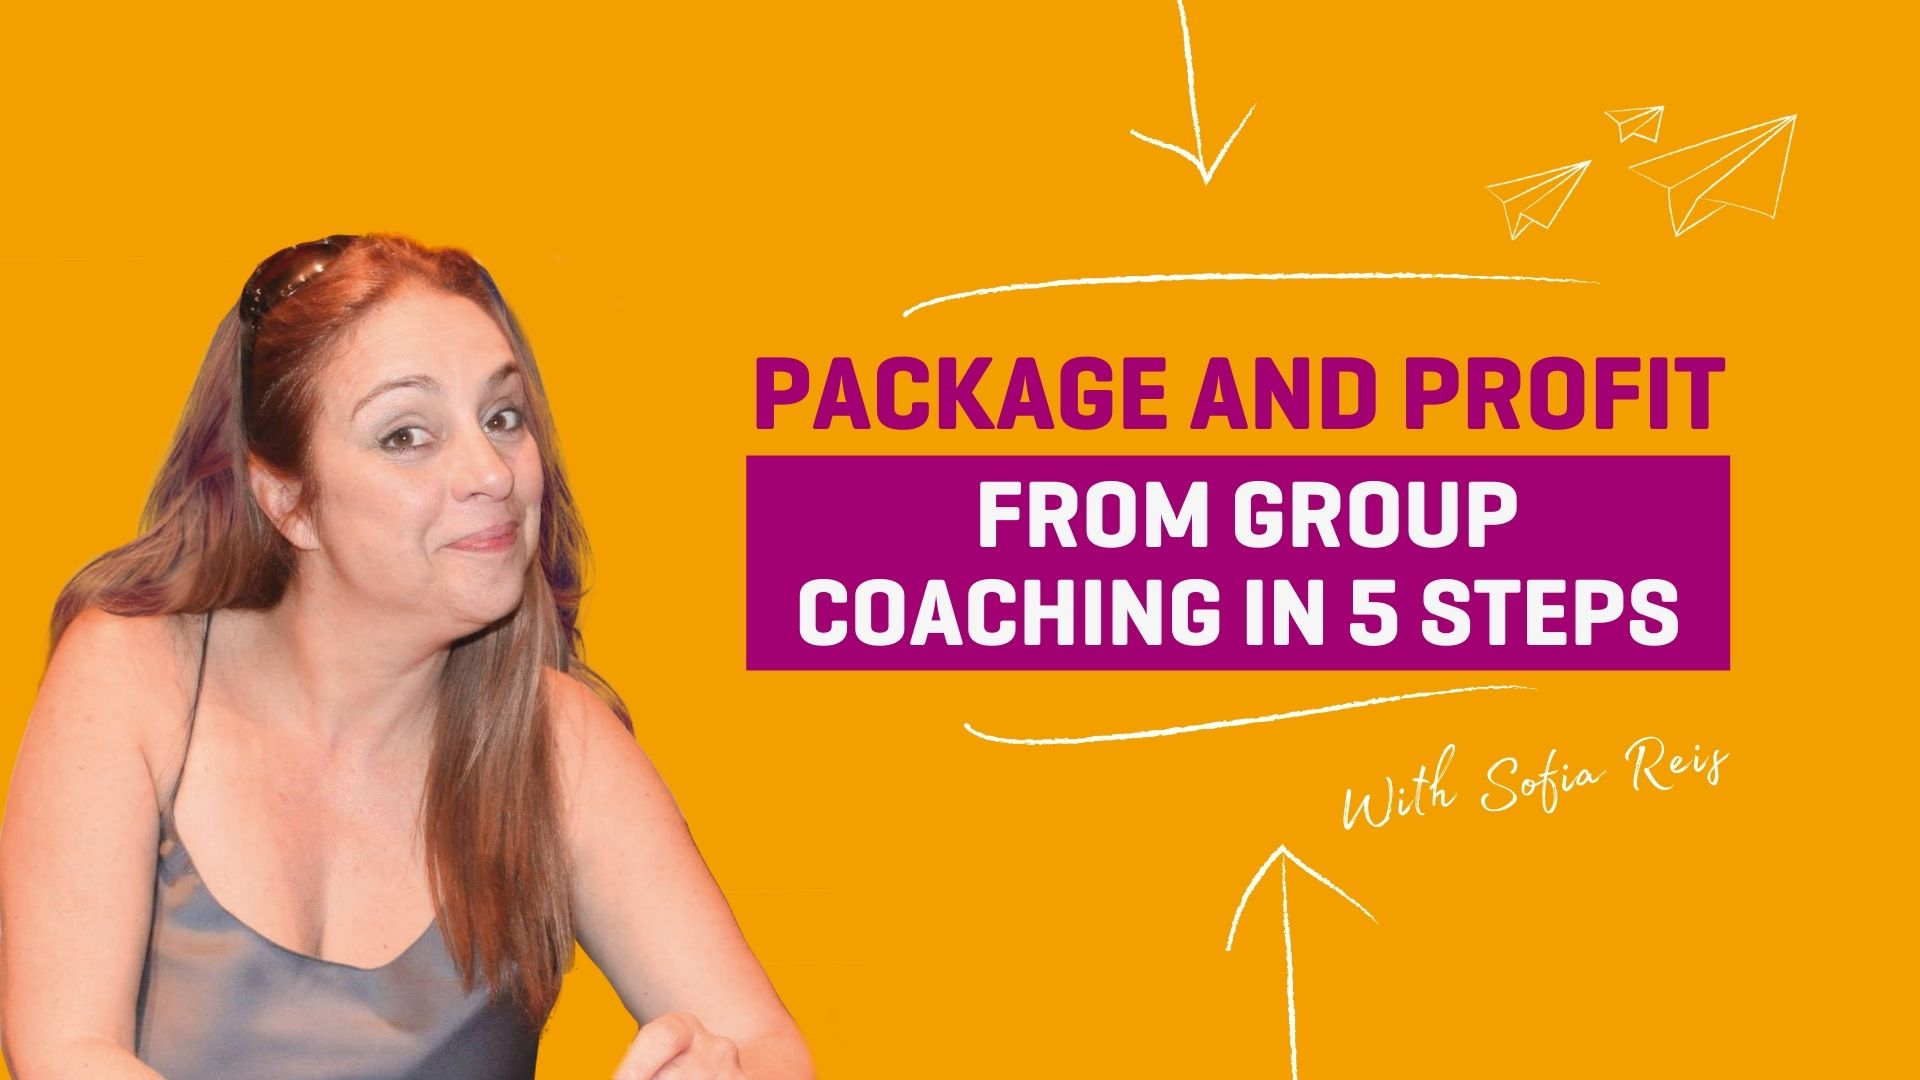 Package and Profit from Group Program in 5 steps